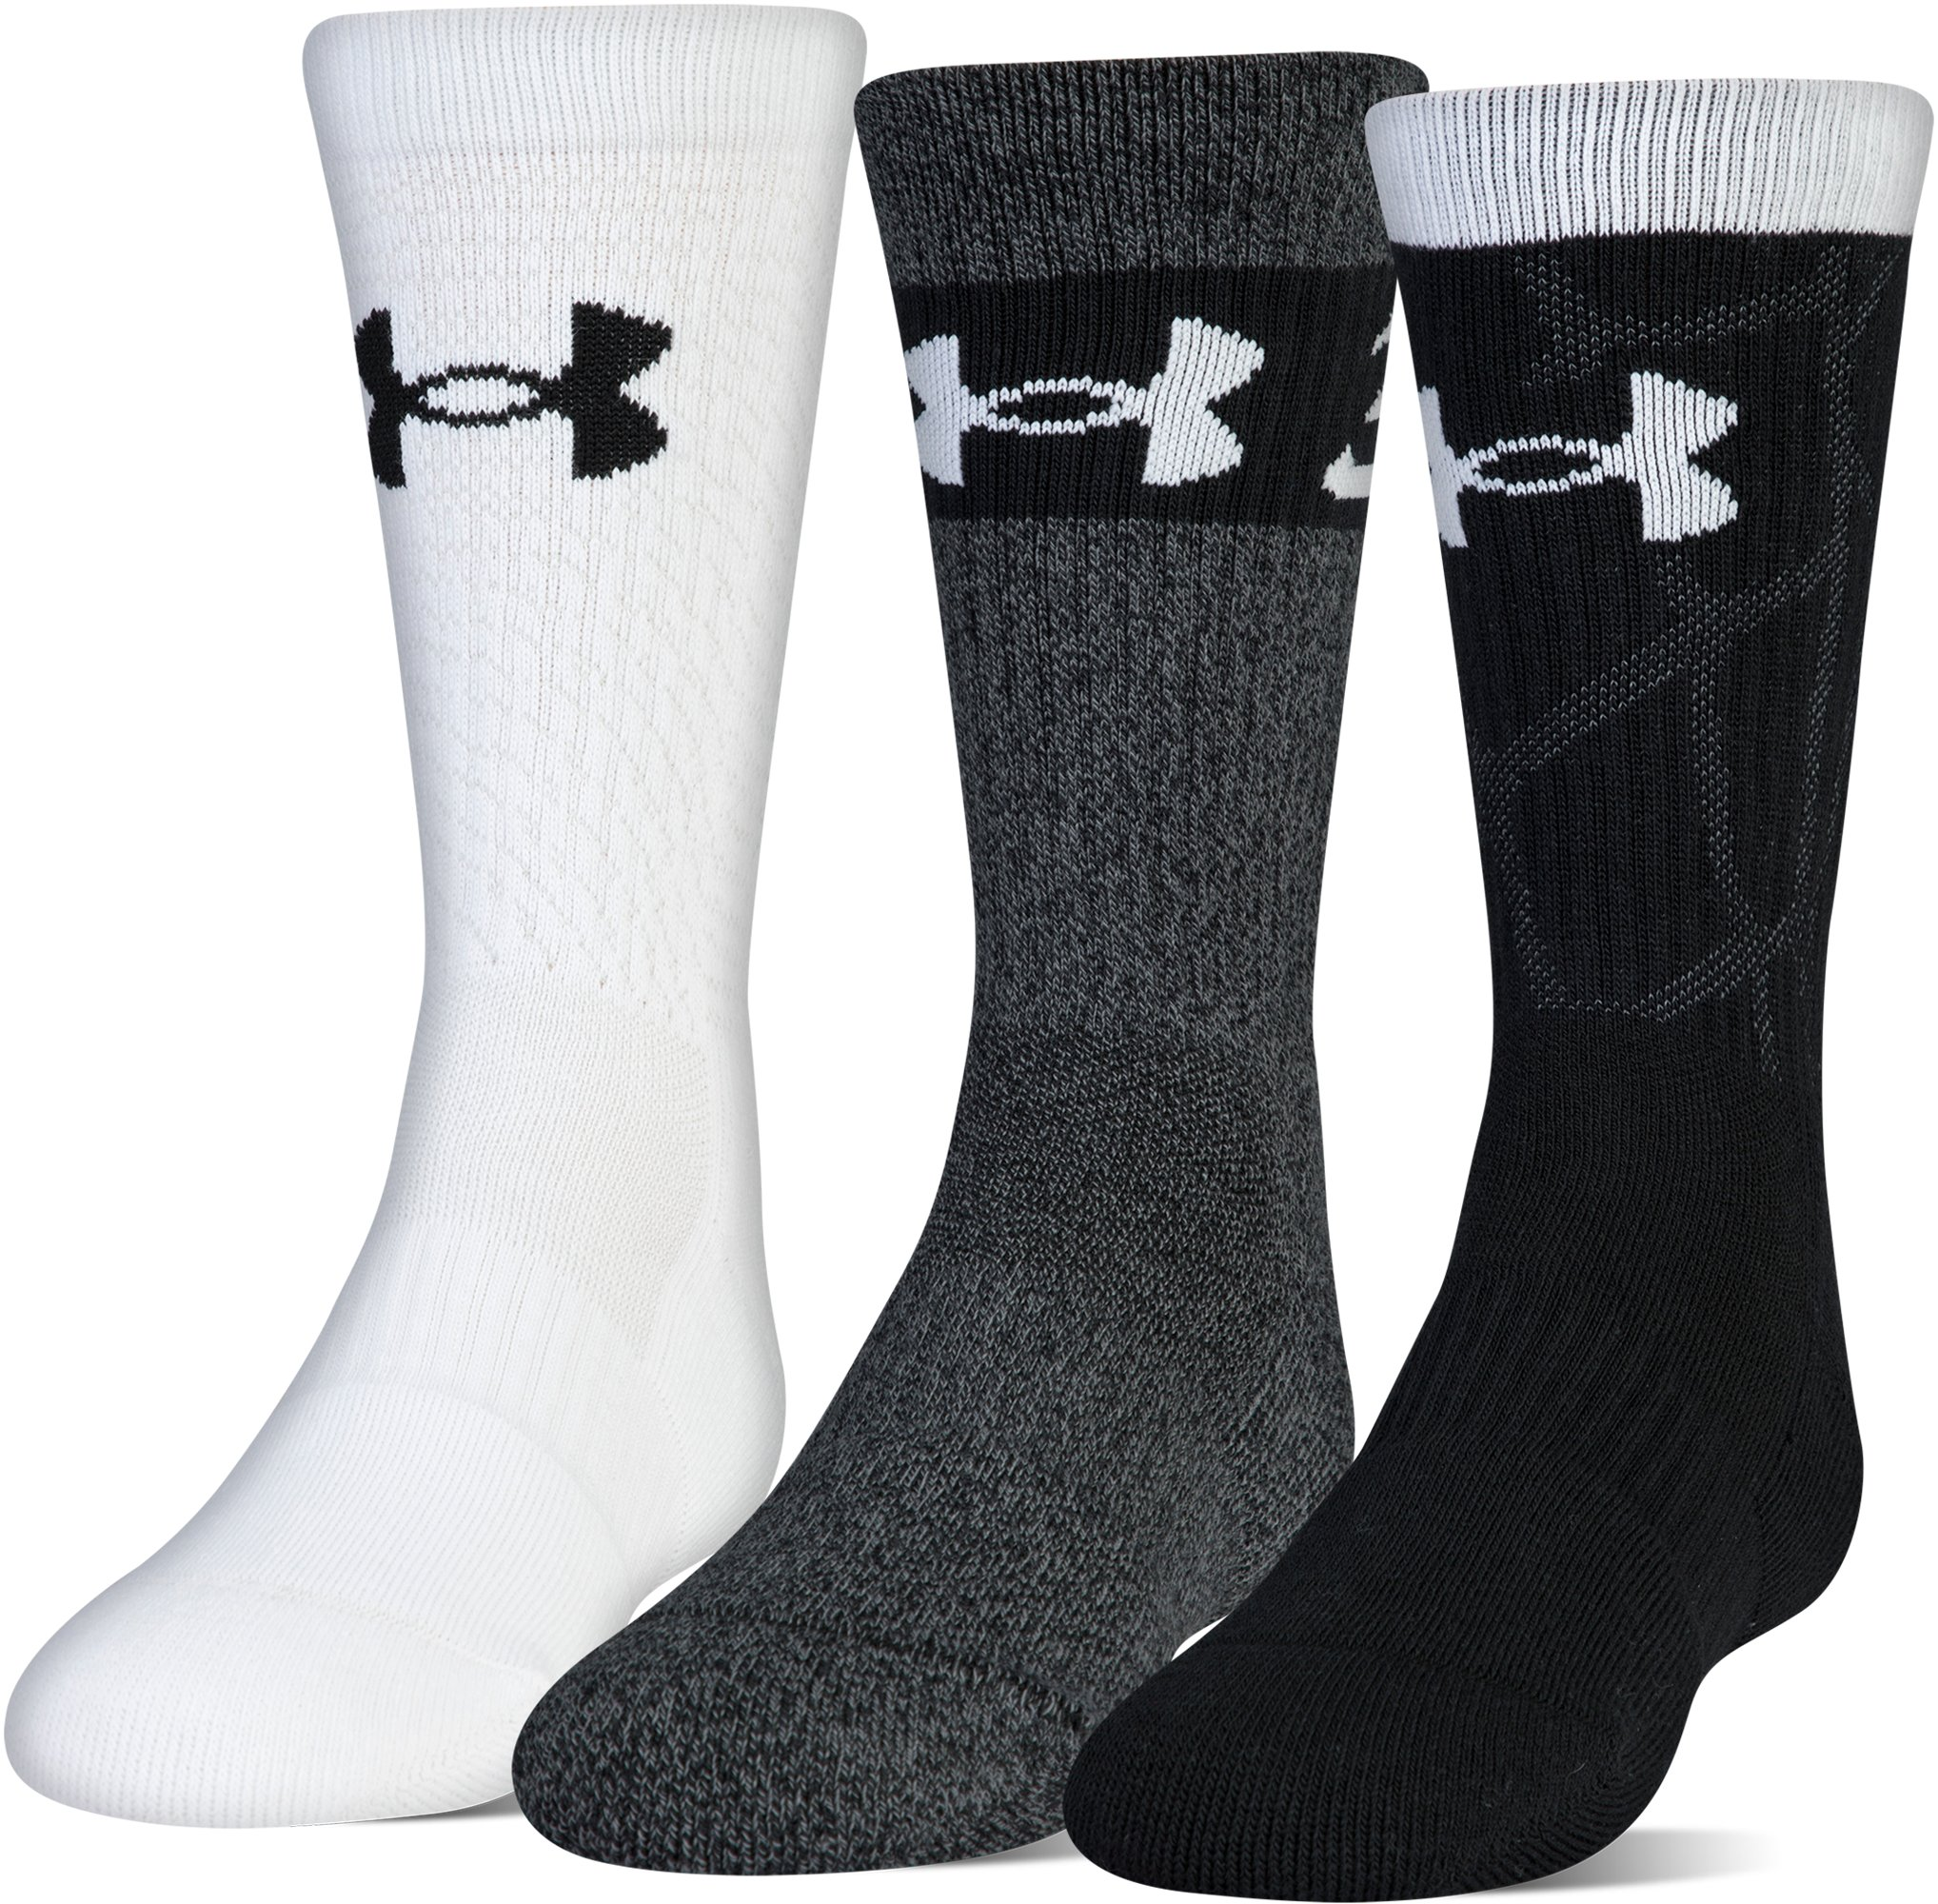 Boys SC30 Phenom 2.0 Crew Socks 3-Pack, Black